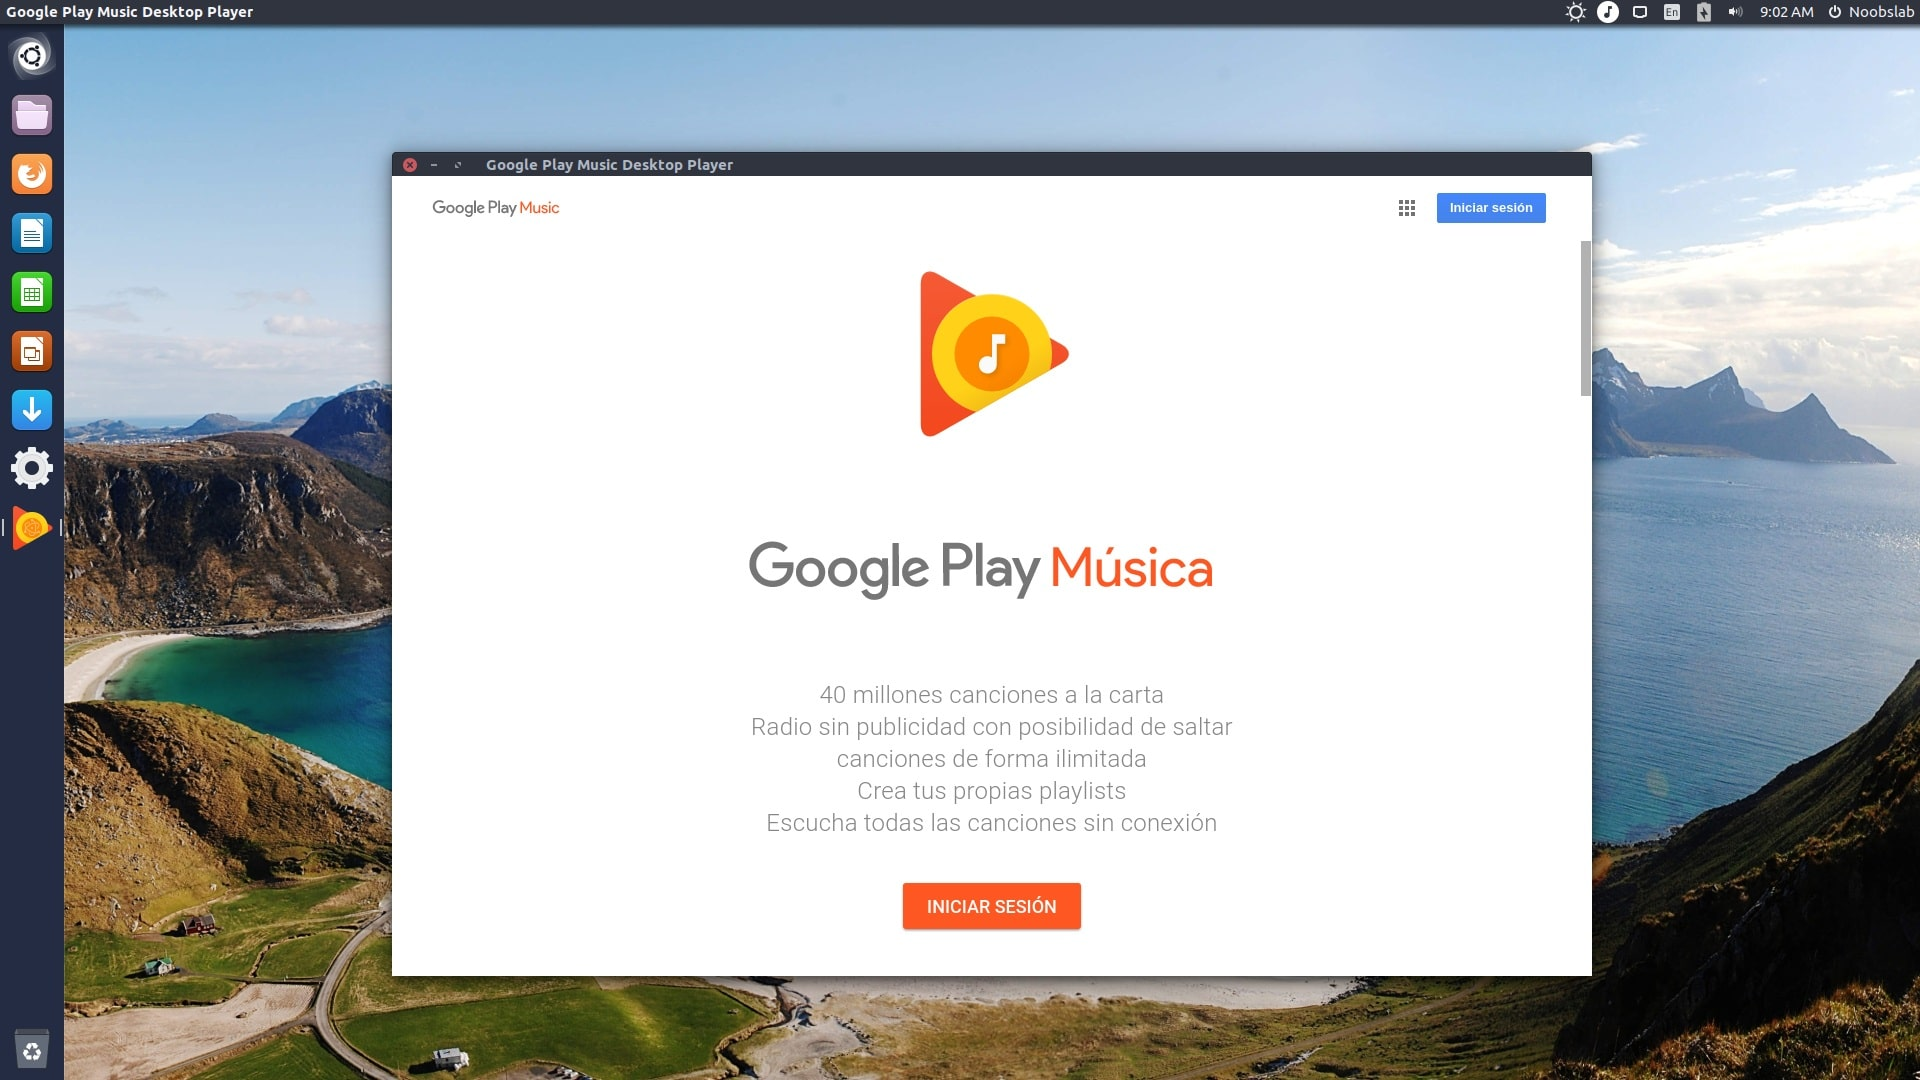 como-instalar-google-play-music-desktop-player_GPMDP